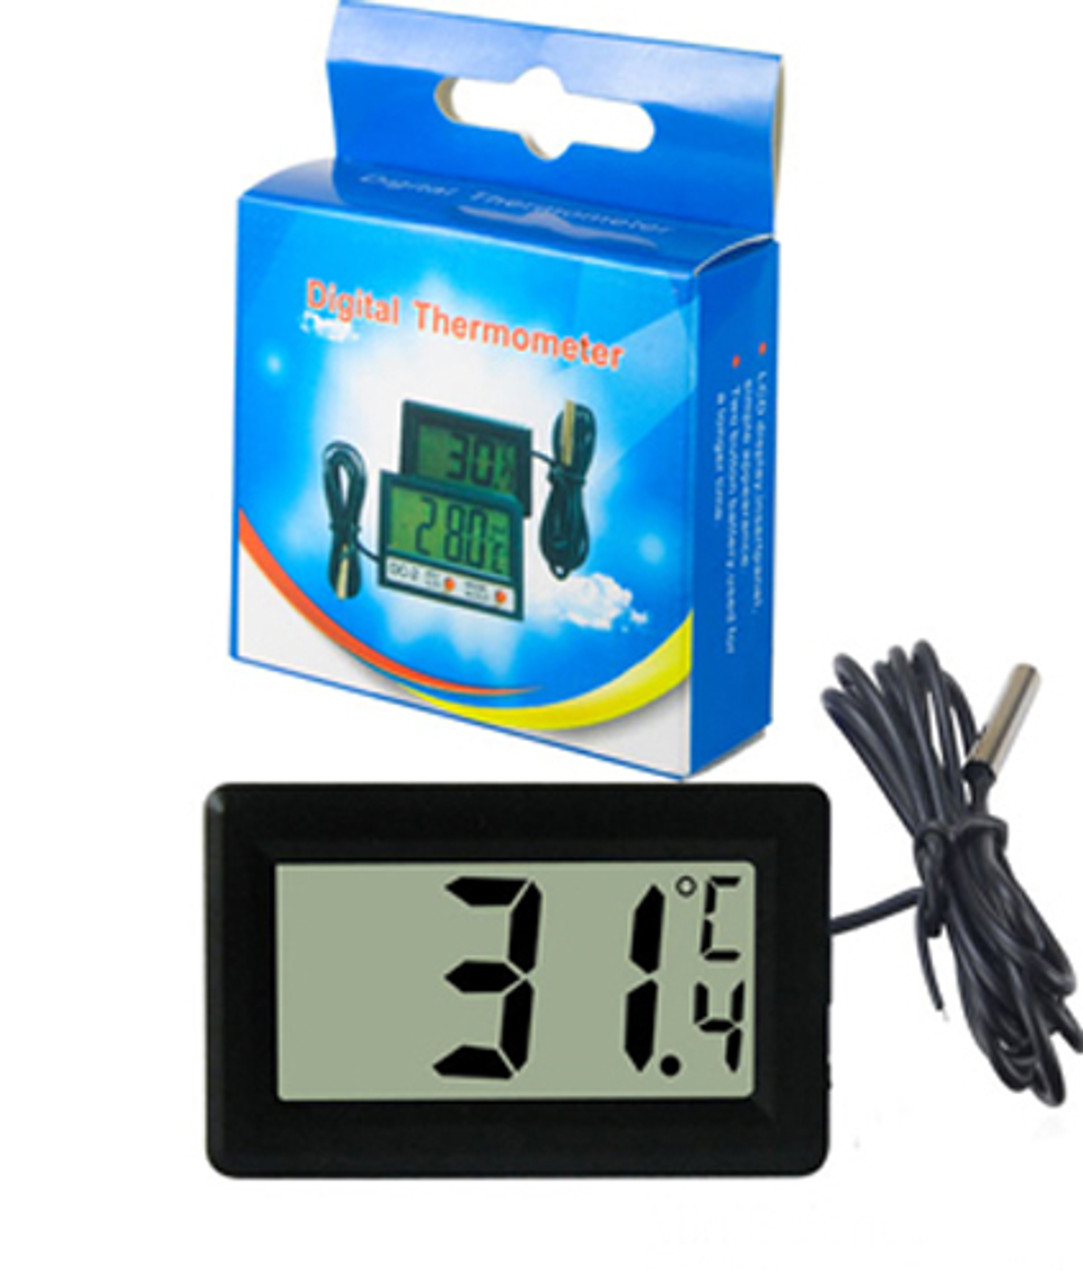 Digital thermometer with sensor probe